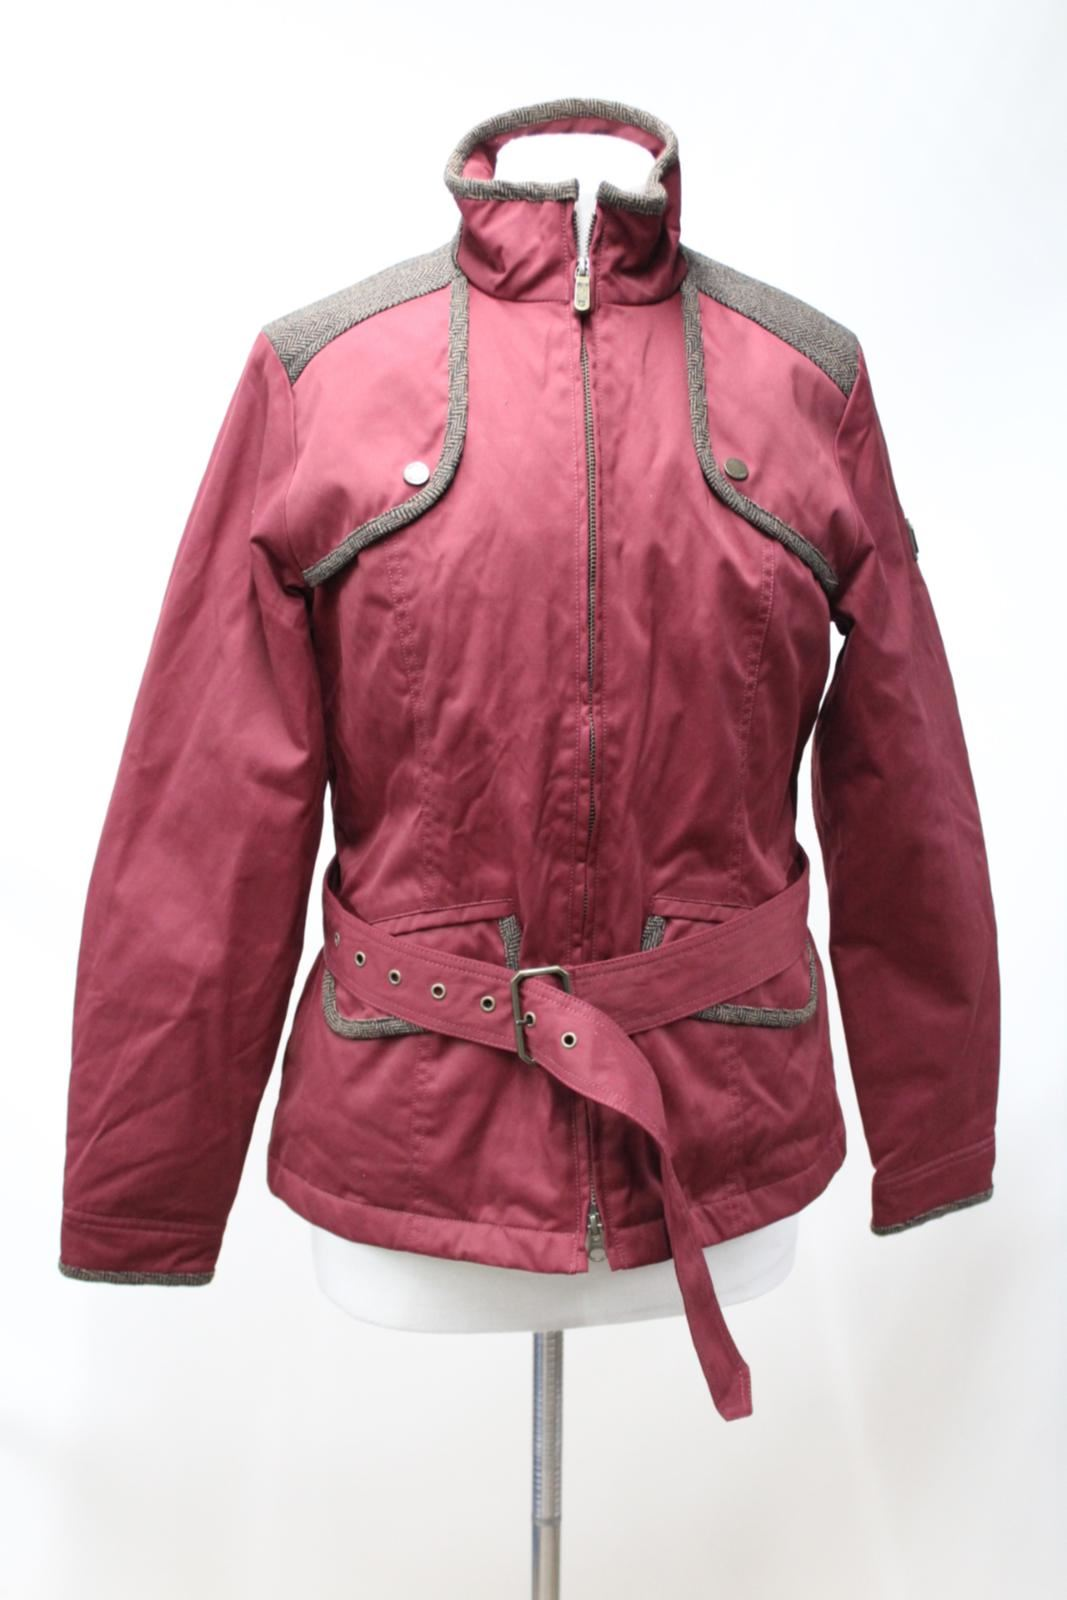 Ladies Doublure Camicia trekking Bnwt da Belt Ceinture Red Veste Uk10 Eu35 Dubarry H9D2eIYWE